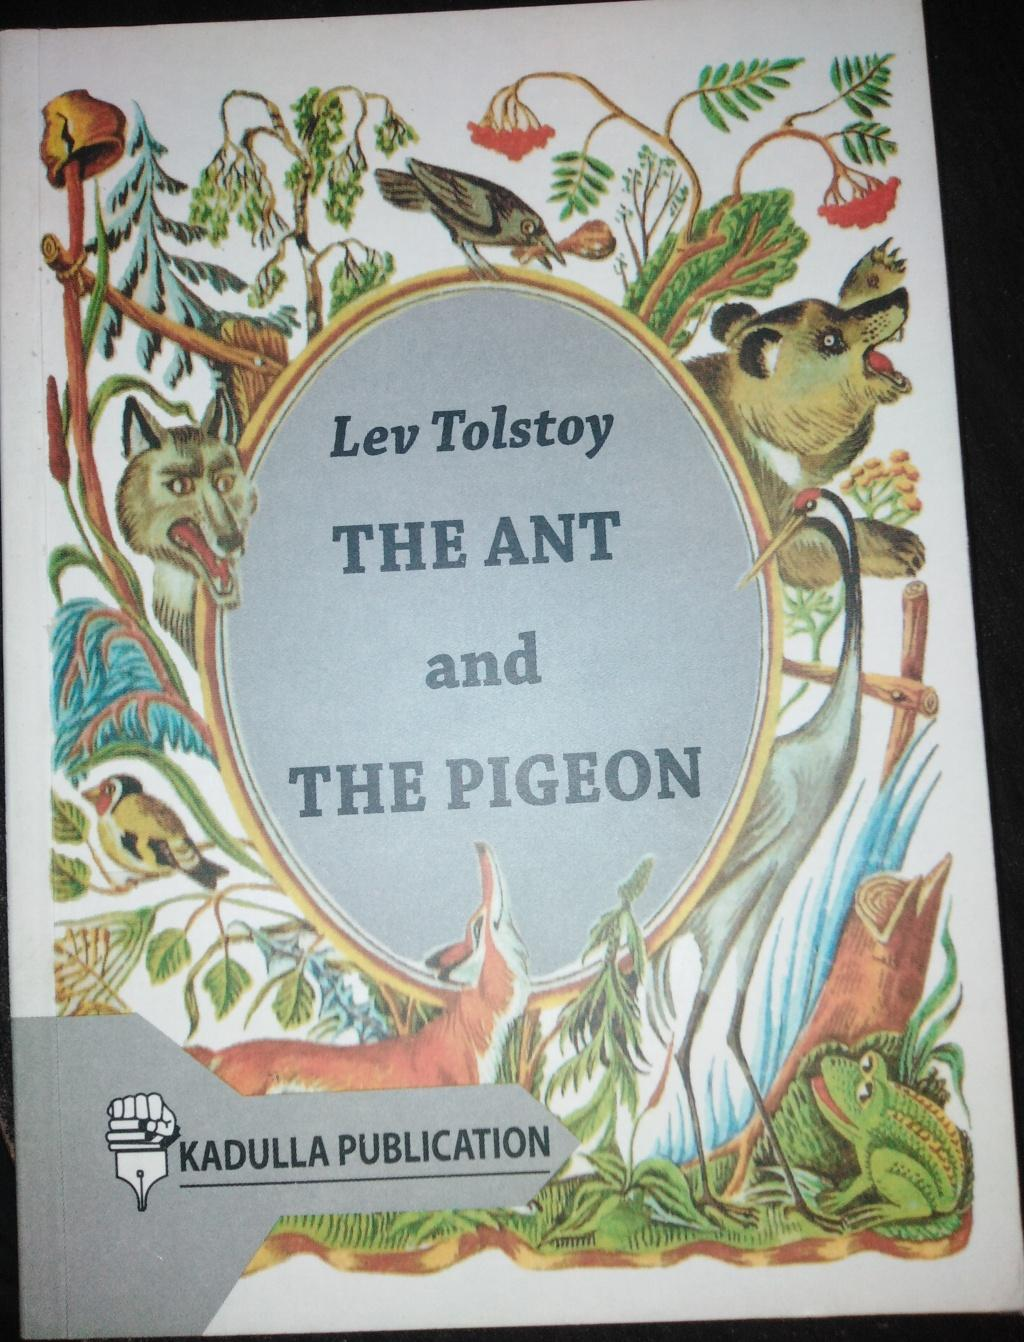 THE ANT and THE PIGEON